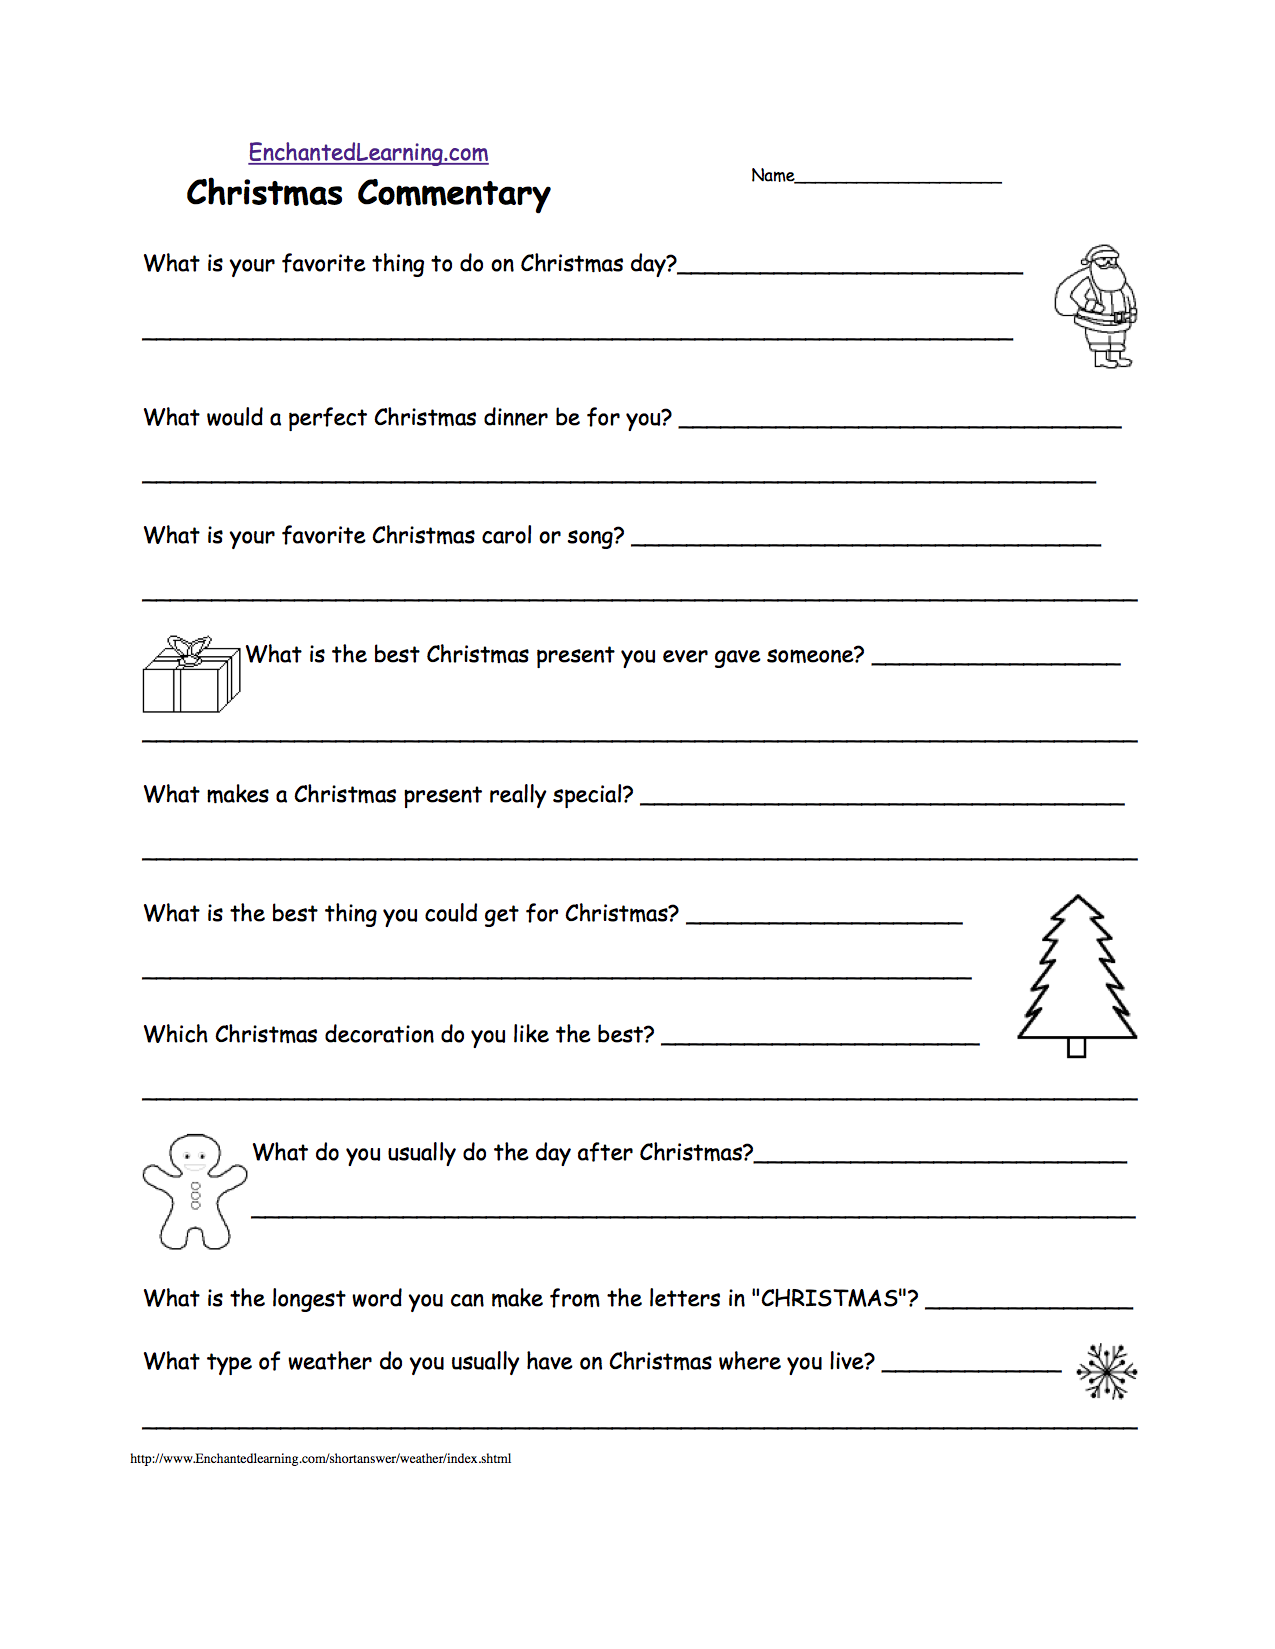 Worksheets Landforms Worksheets short answer quizzes printable enchantedlearning com birthday